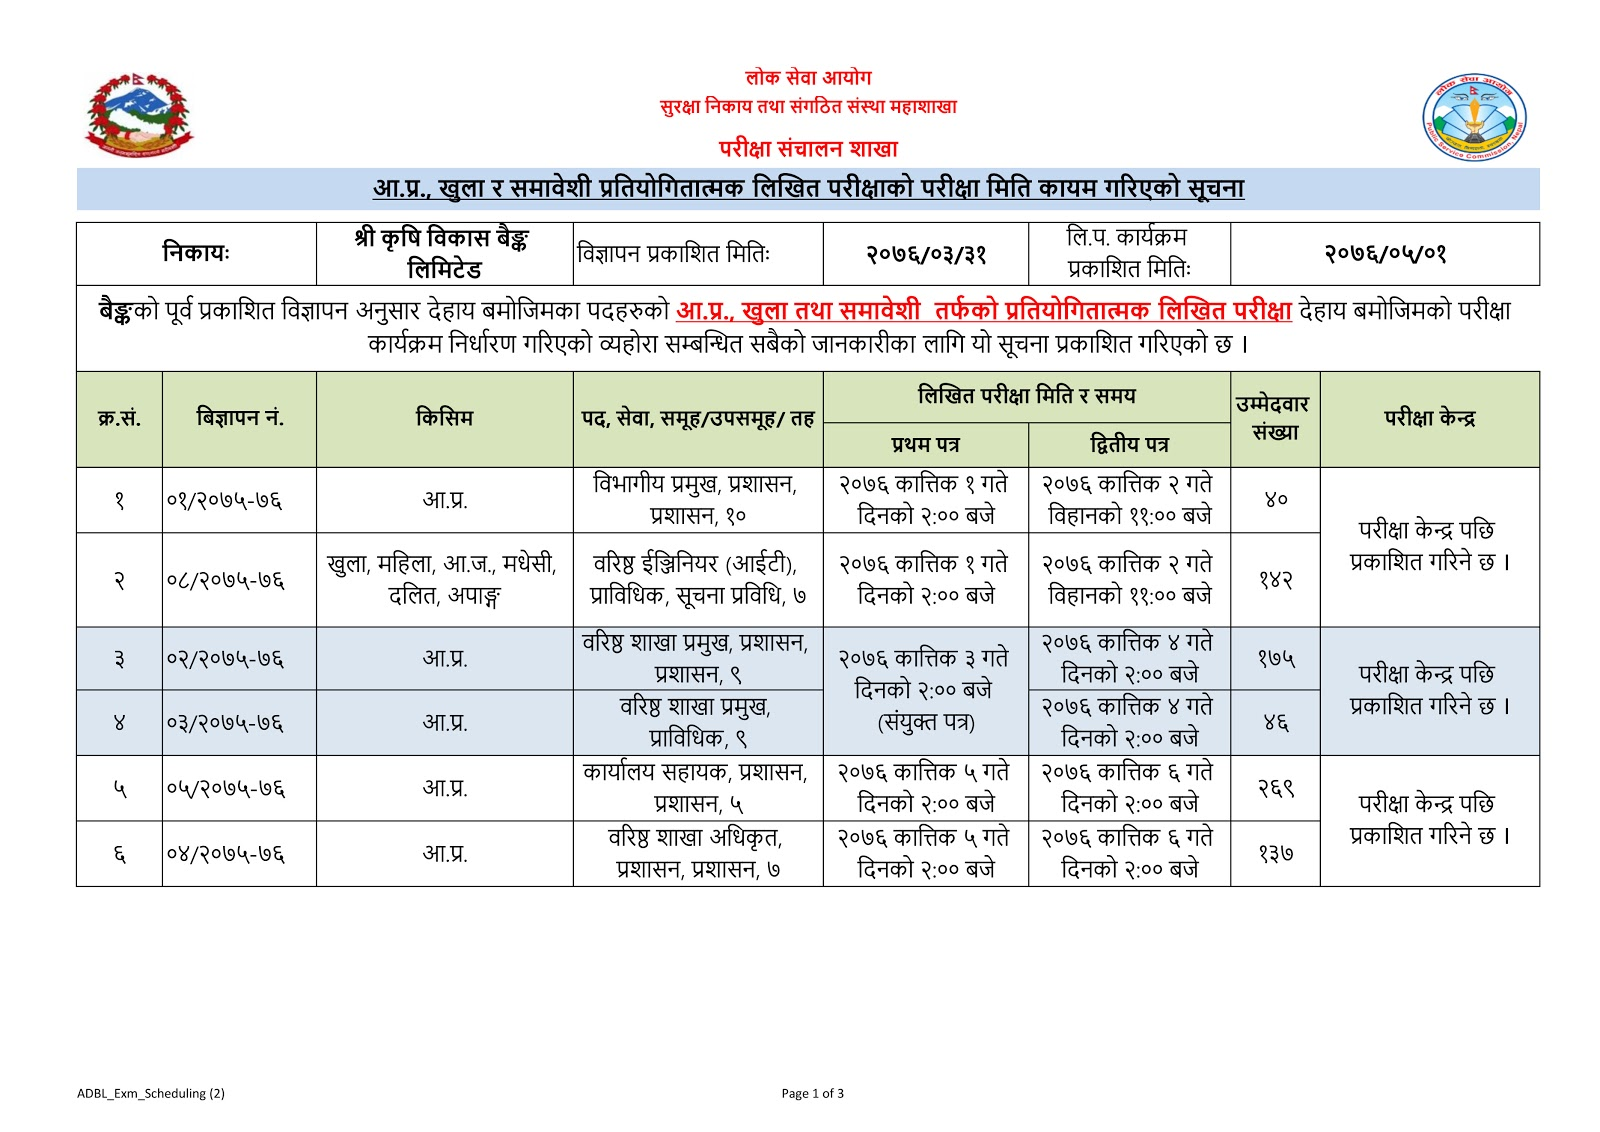 ADBL  Exam Routine  For  All Levels